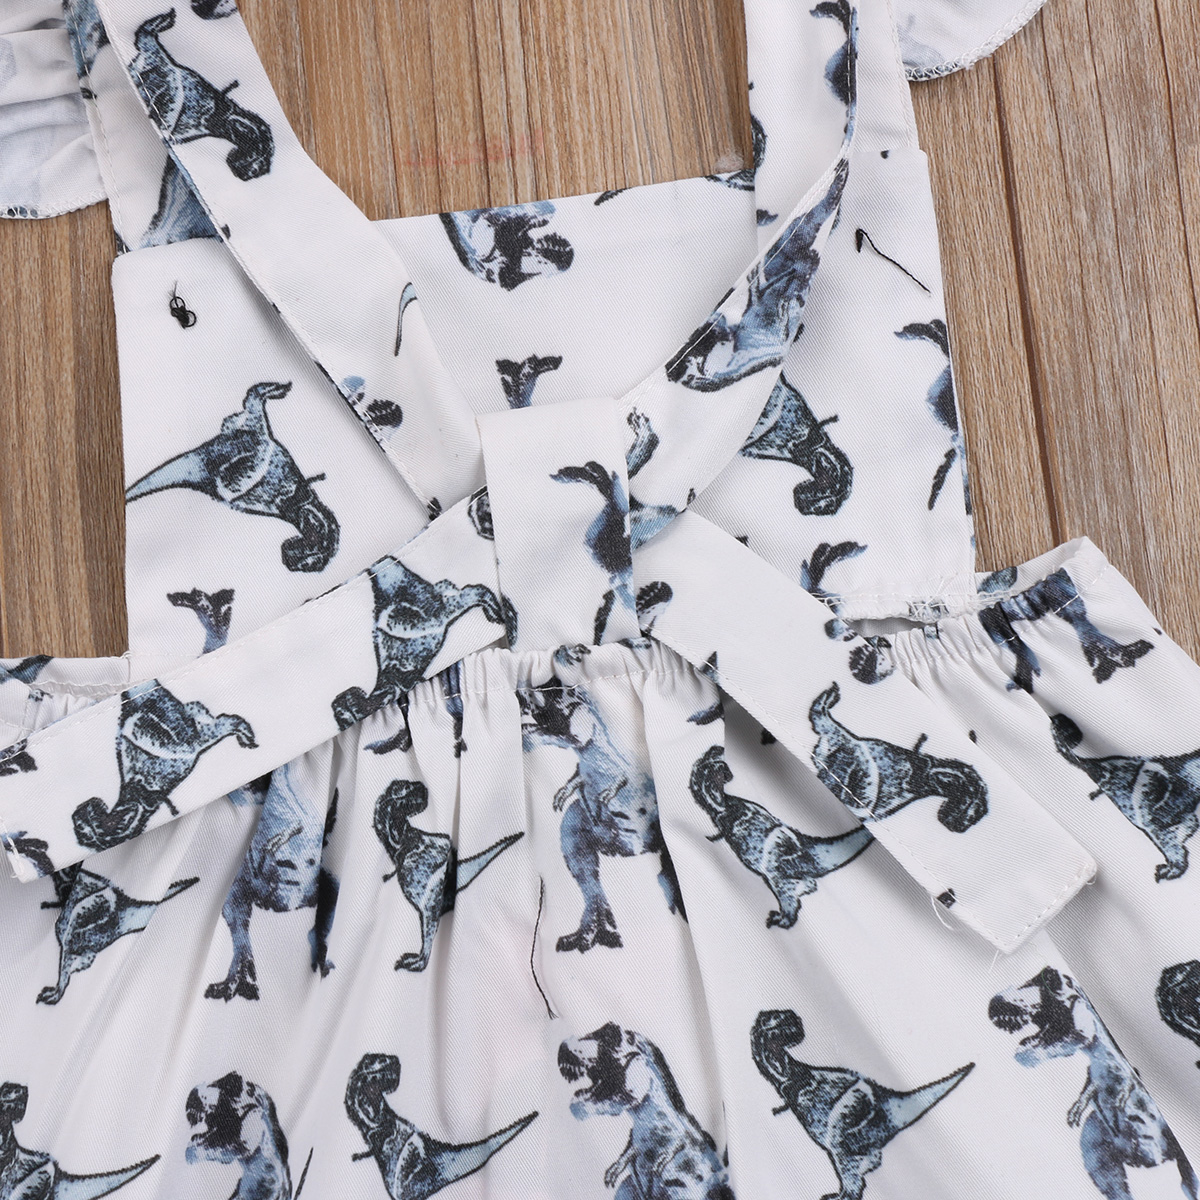 52ff1a20843d Fashon Summer Newborn Baby Girls Dinosaur Sleeveless Fly Sleeve Cotton Dress  Clothes Outfits Sundress Summer-in Rompers from Mother   Kids on  Aliexpress.com ...